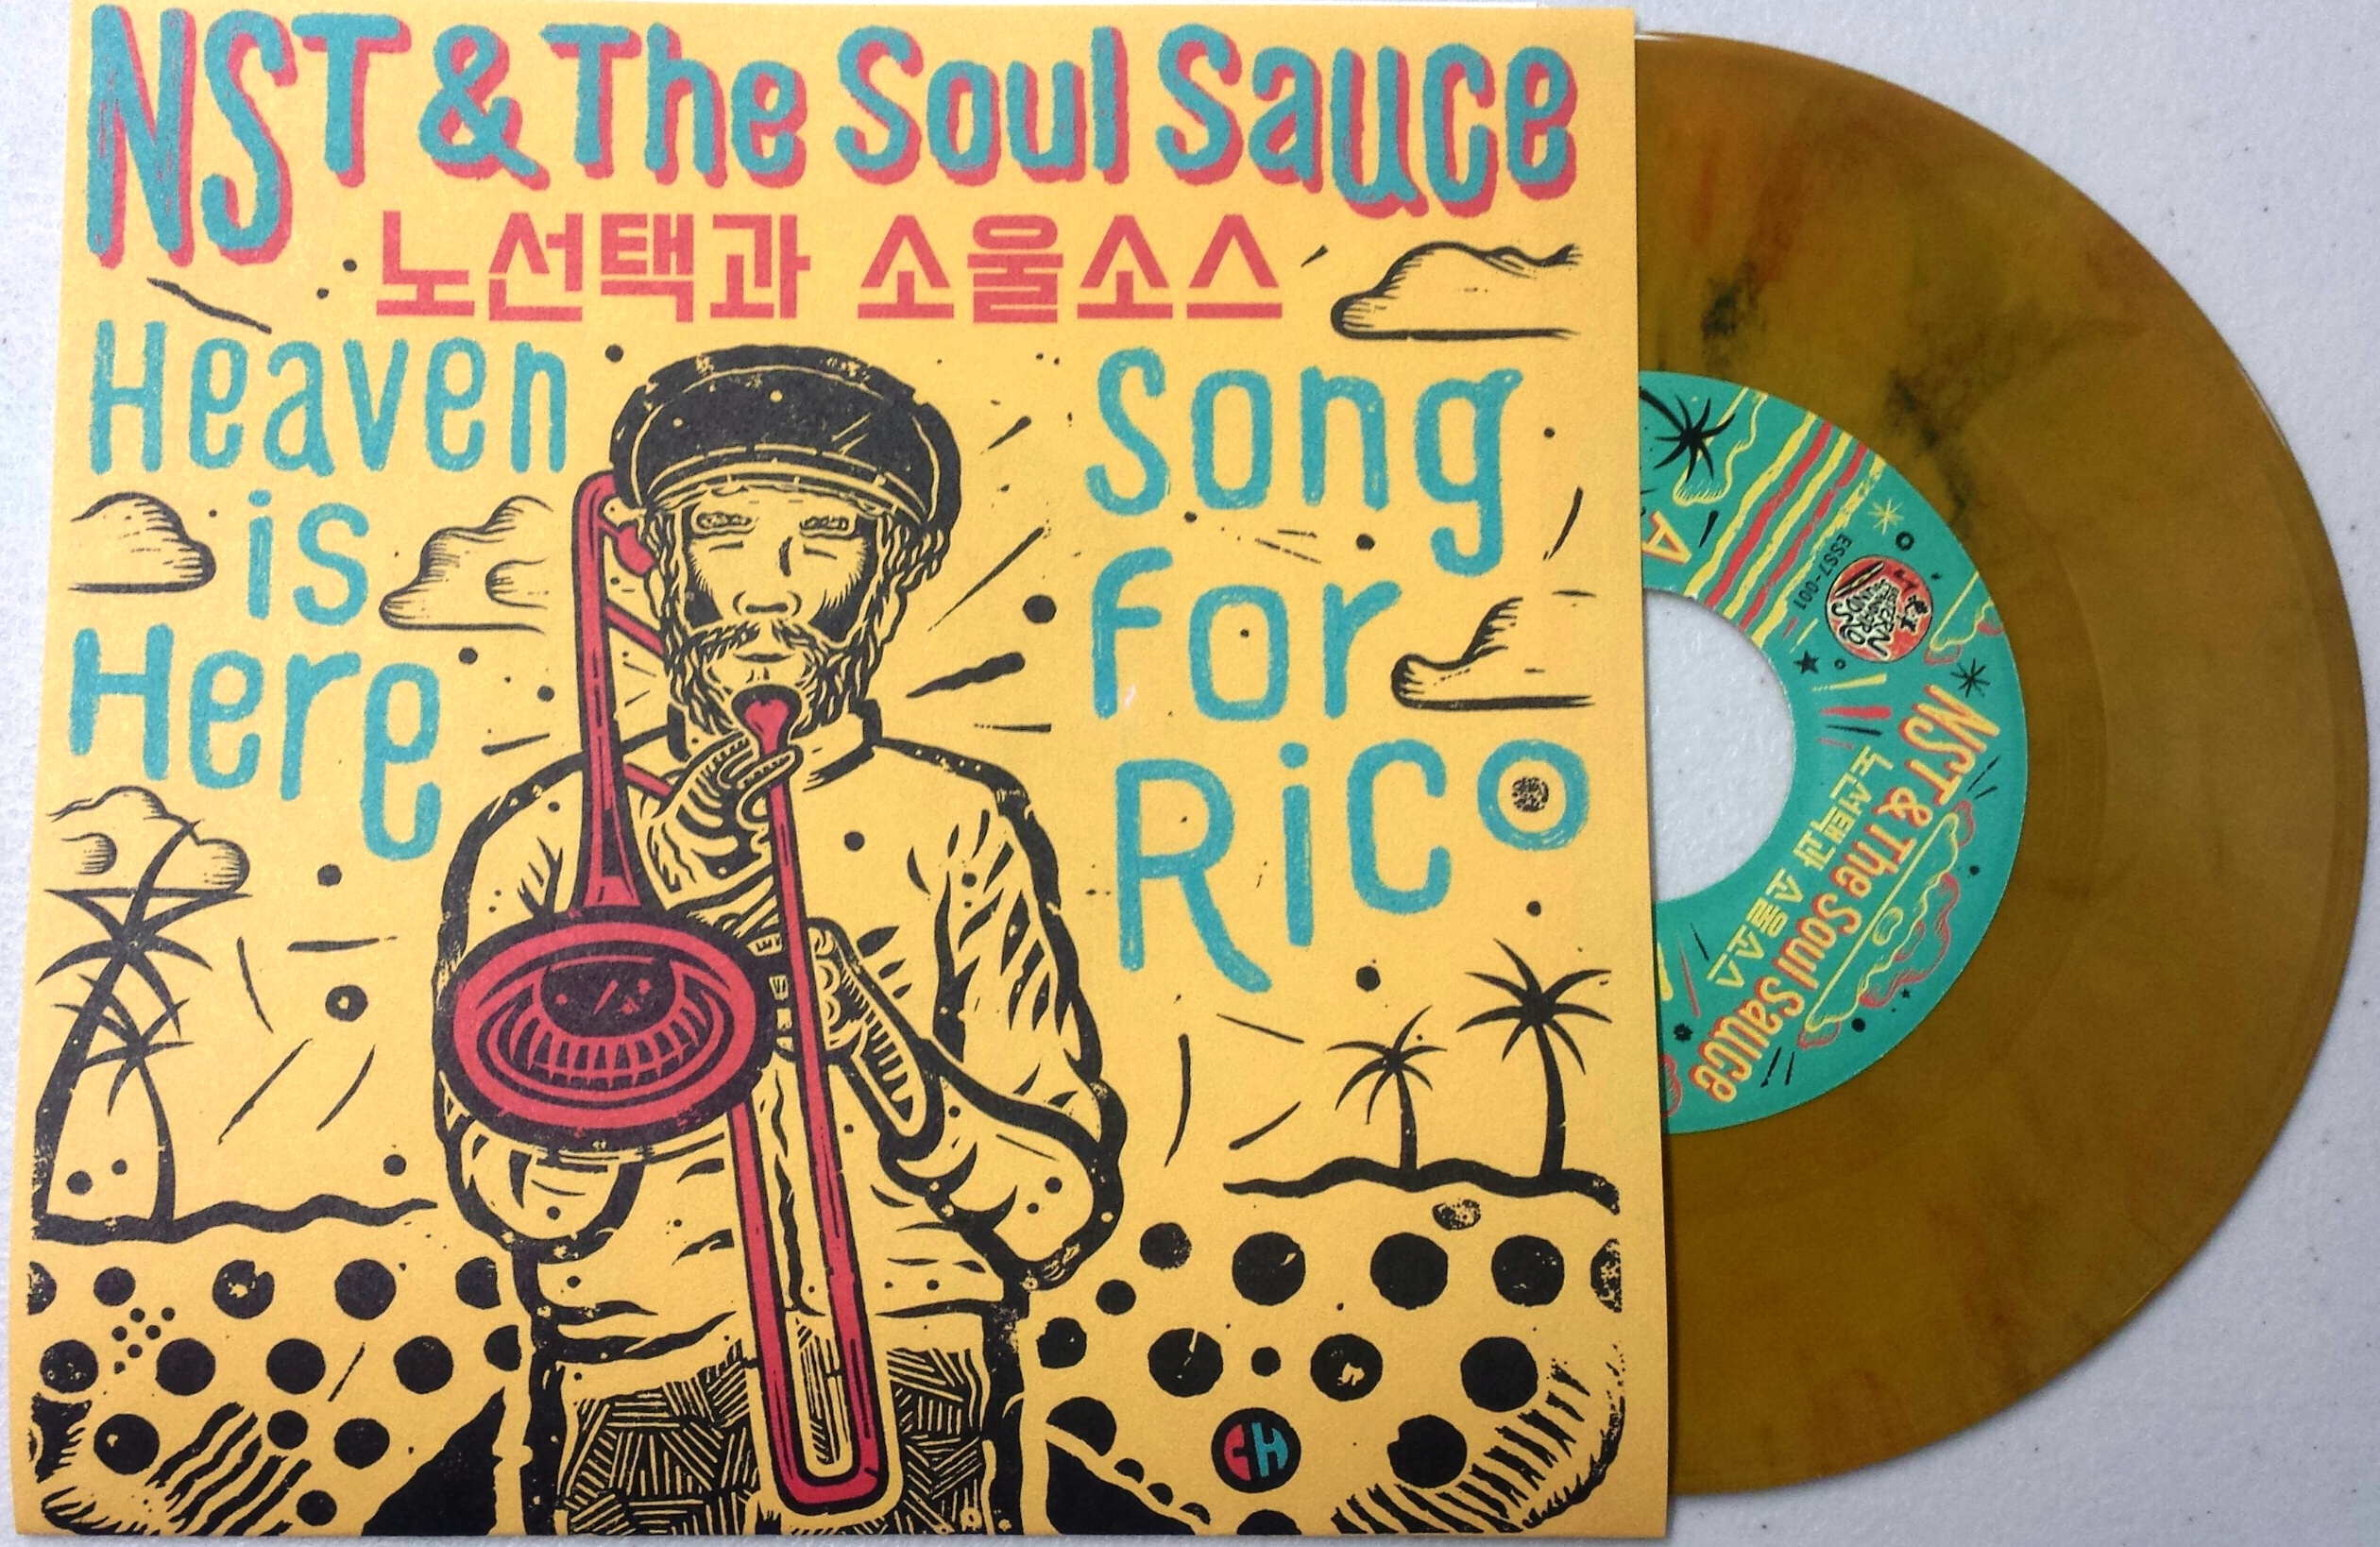 """NST & The Soul Sauce/SONG FOR RICO 7"""""""